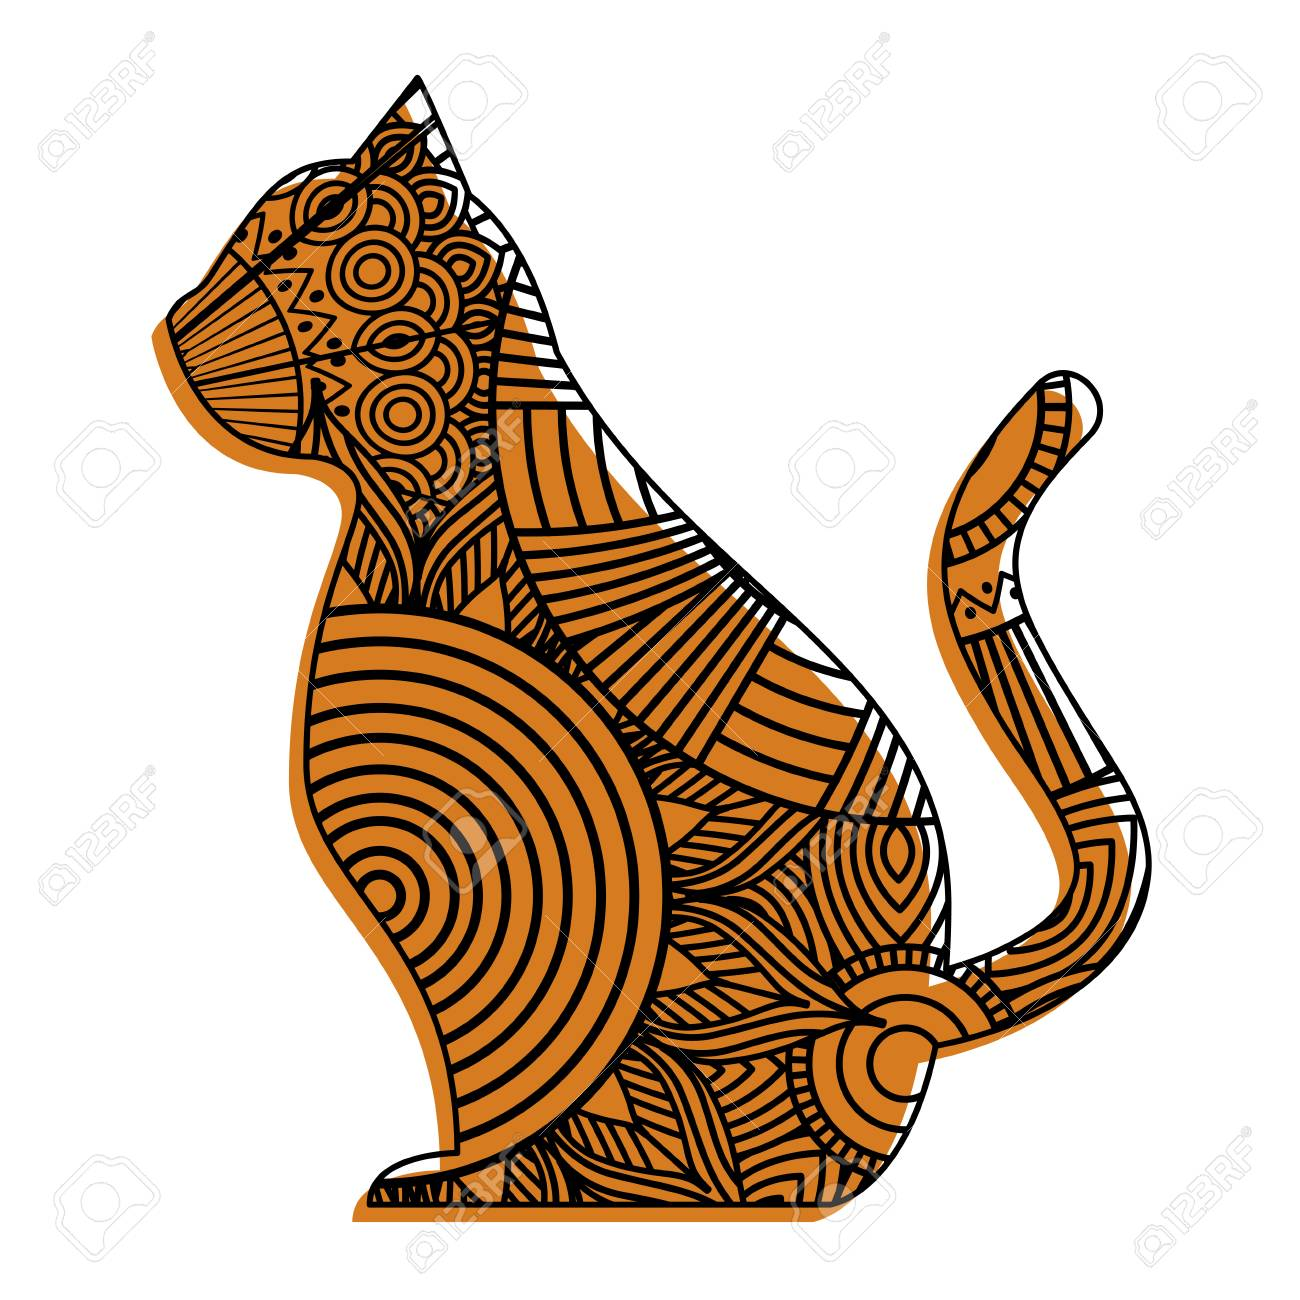 hand drawn for adult coloring pages with cat vector illustration rh 123rf com Football Outline Vector Football Outline Vector